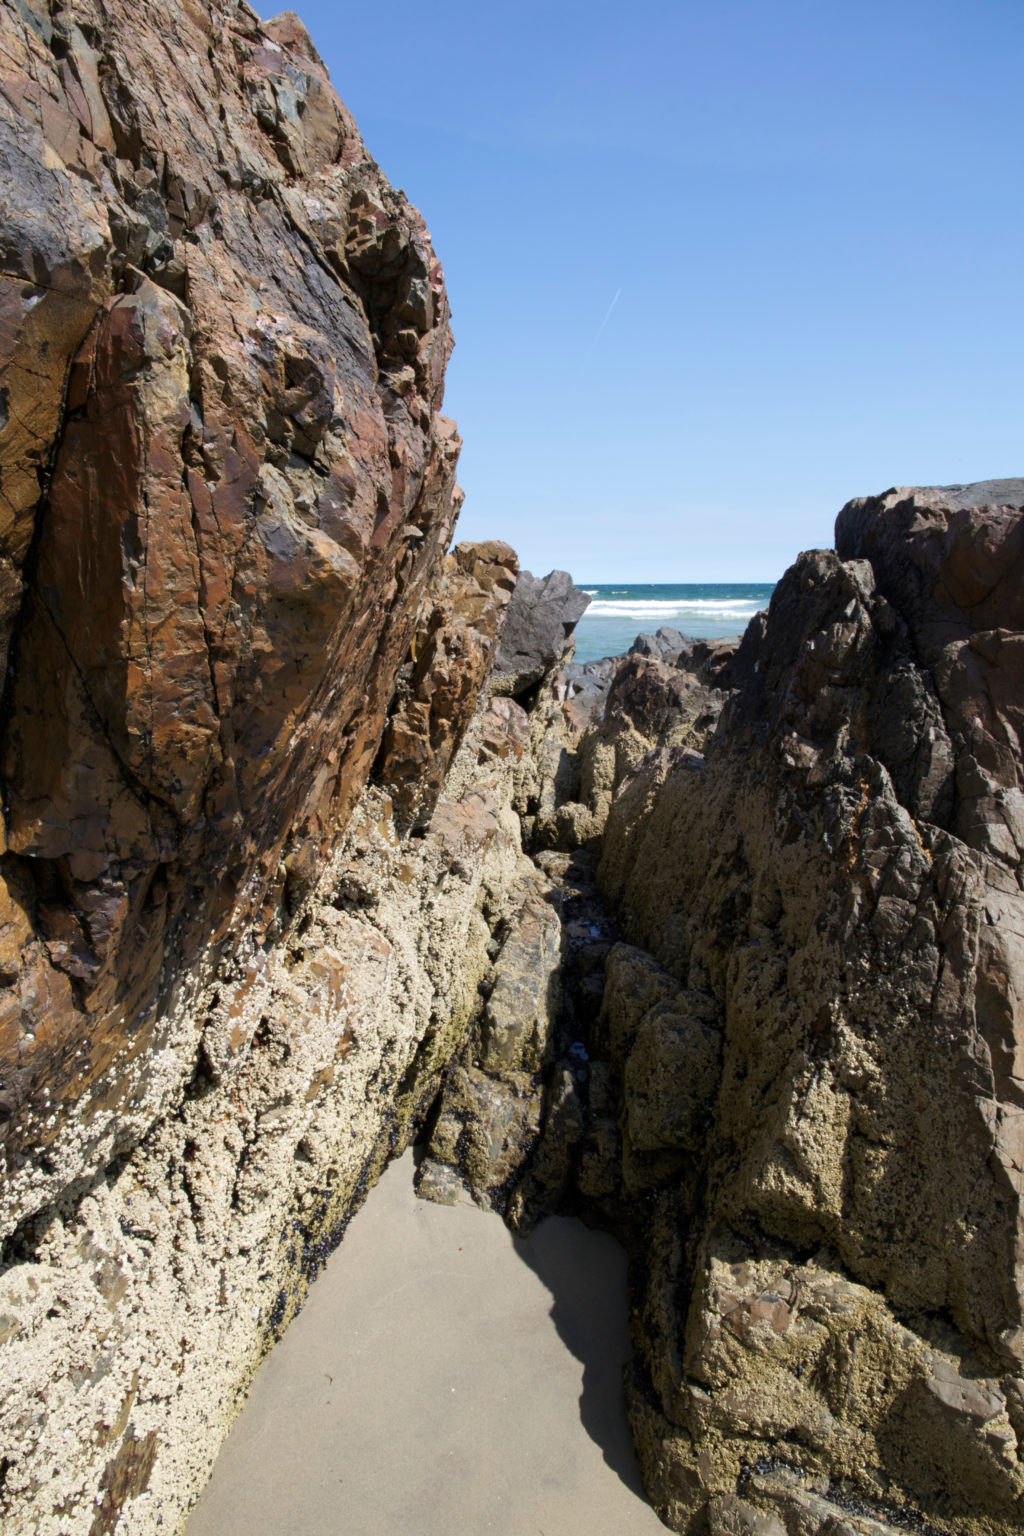 Large Rocks at the Ocean's Edge